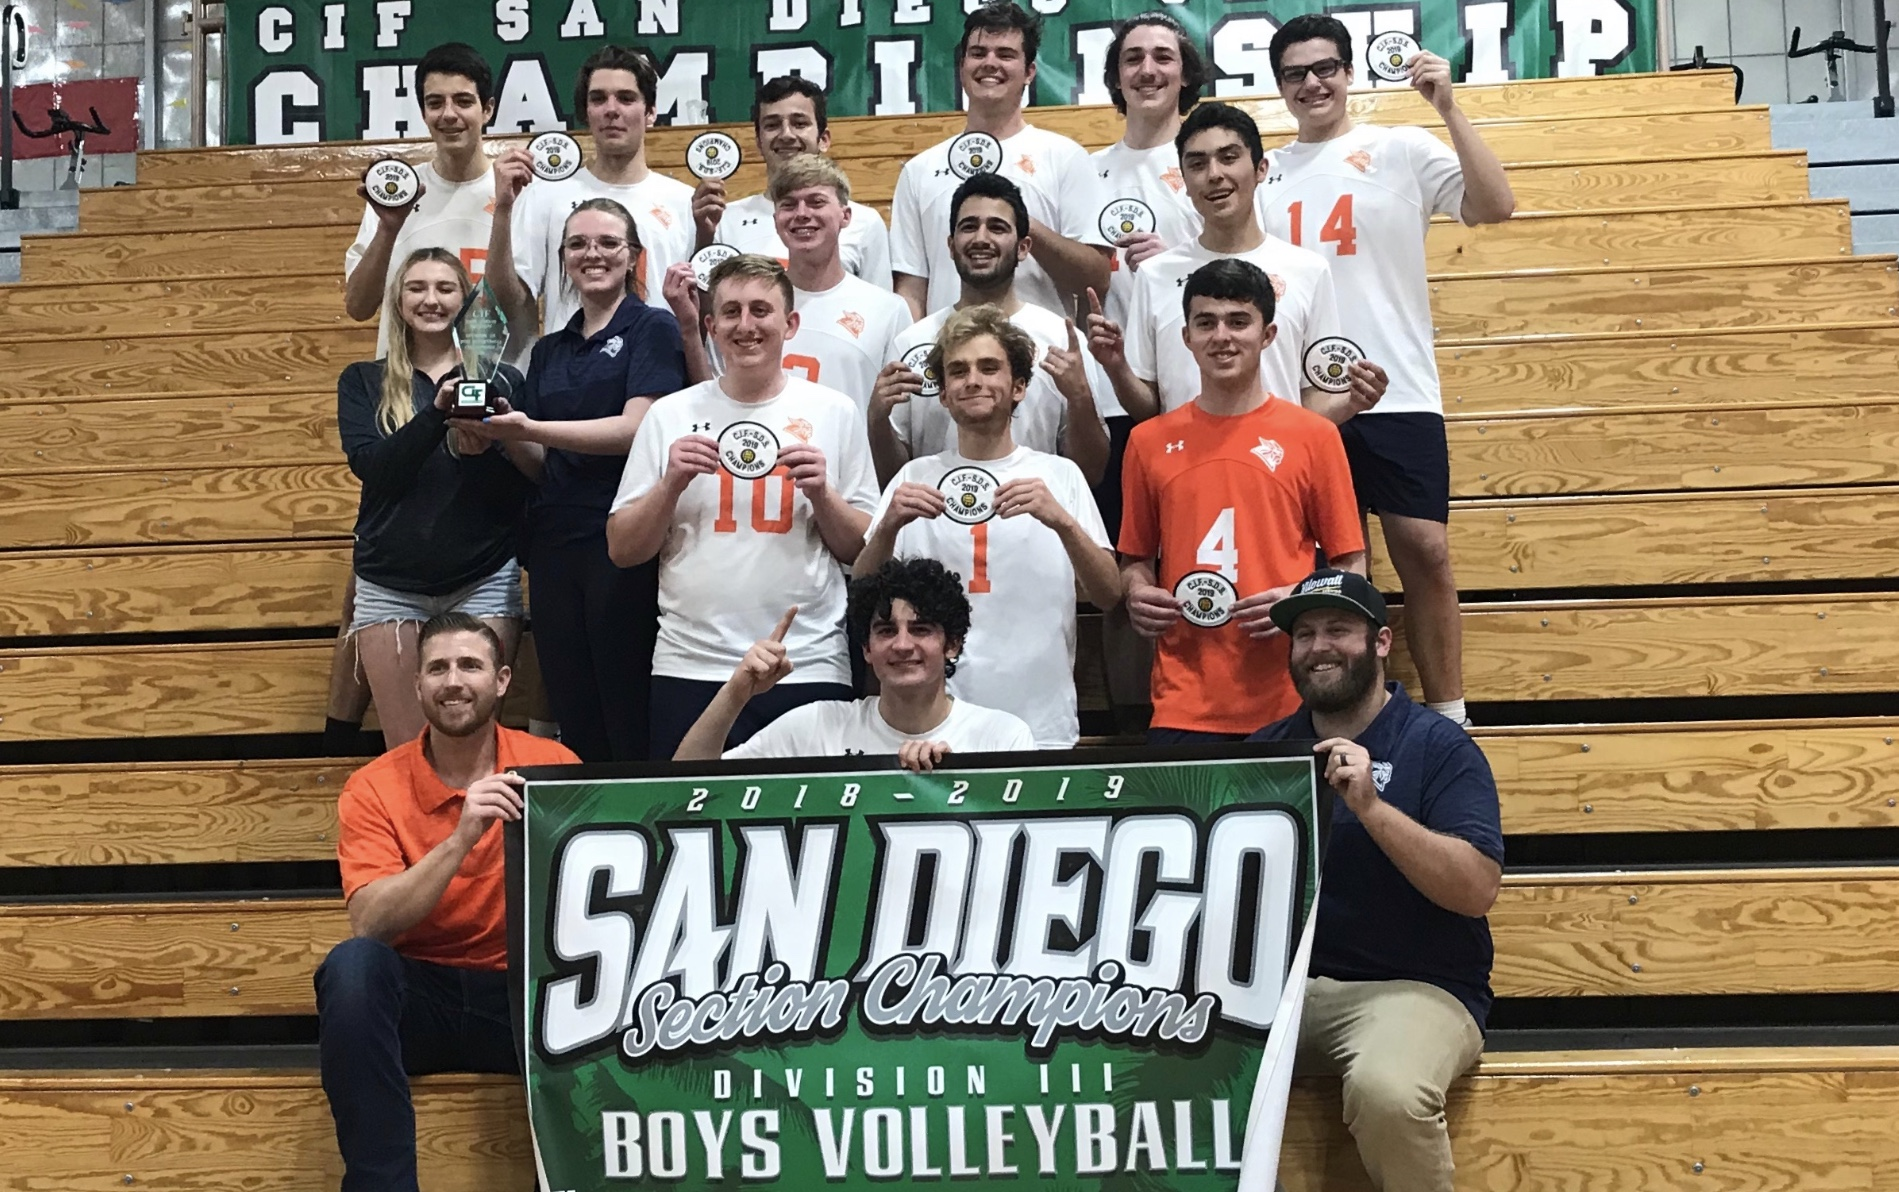 CIF Championship for Boys Volleyball with Win over Grossmont